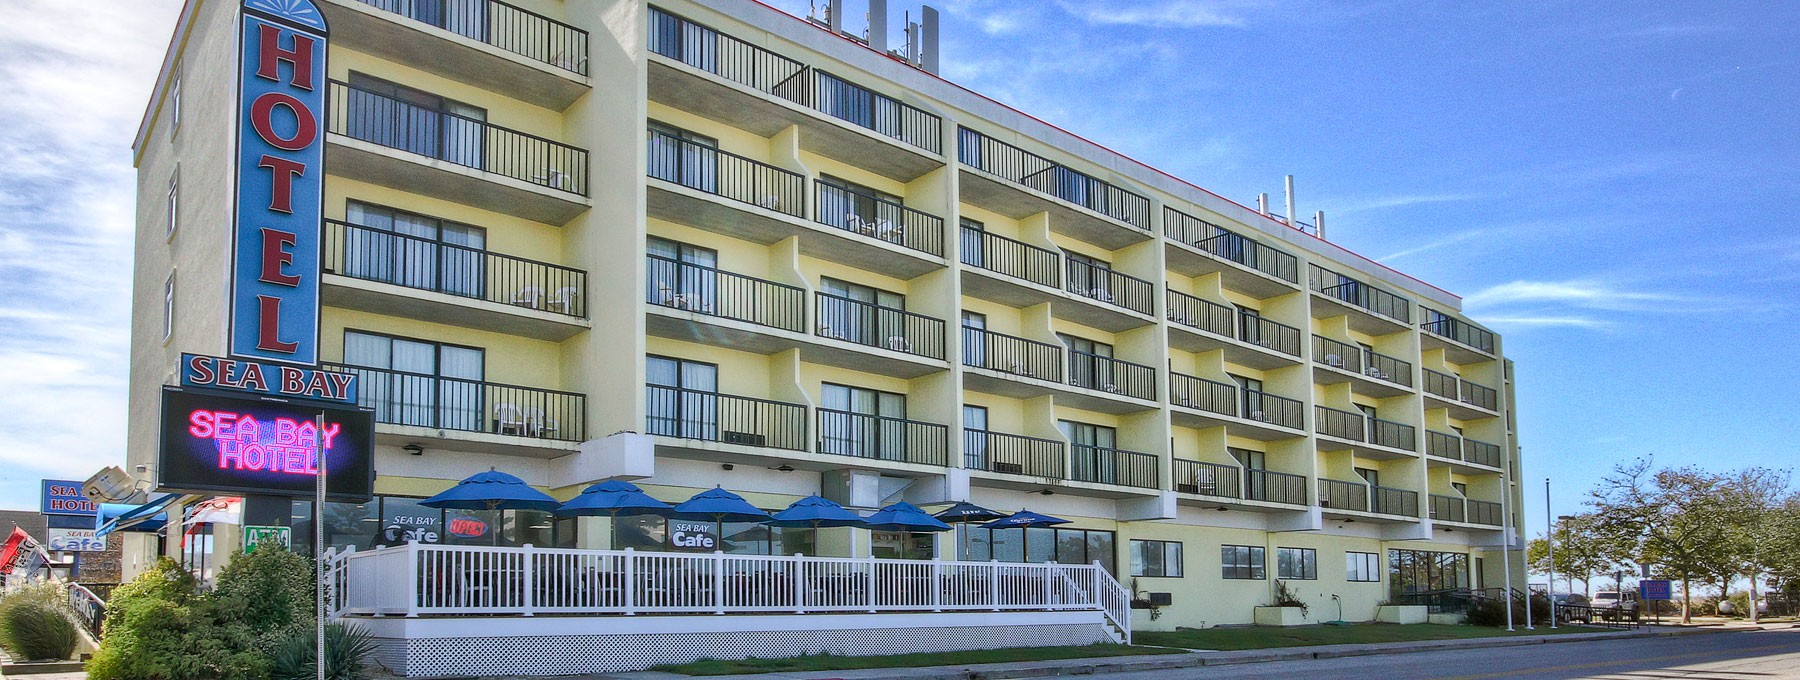 Ocean City Maryland Hotel